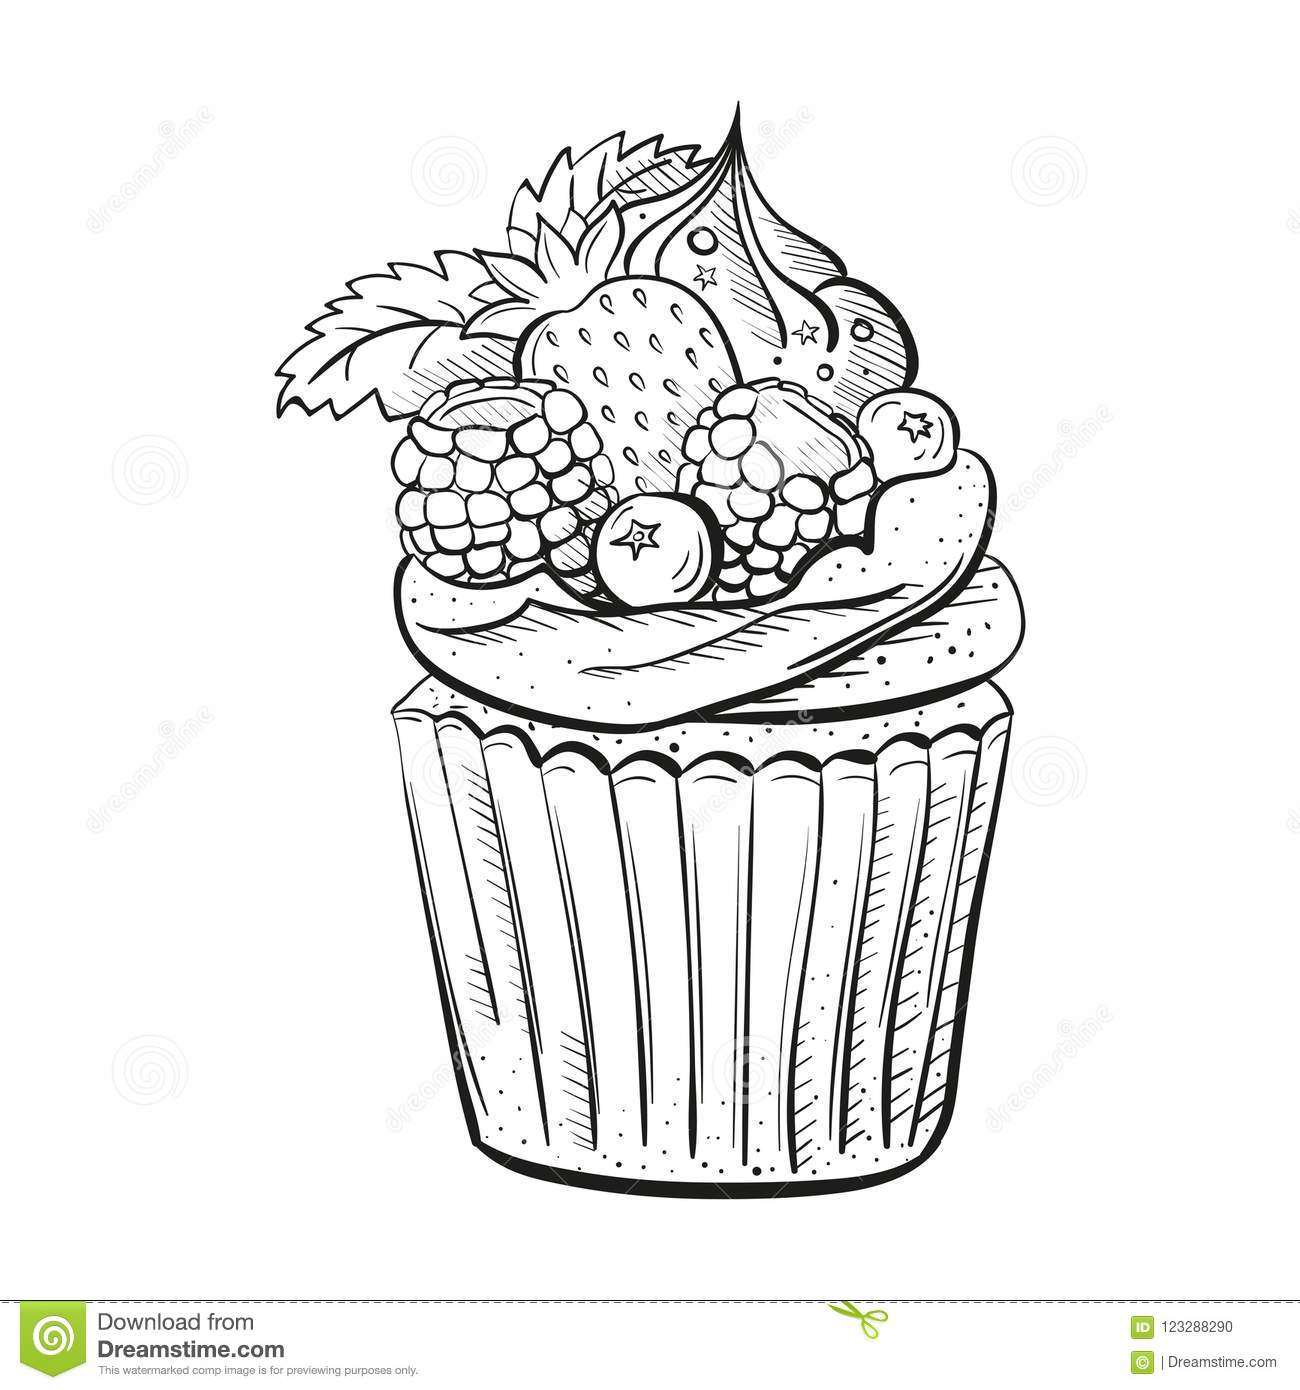 hight resolution of capcake with berries cream and mint sweet beautiful dessert clipart for a restaurant